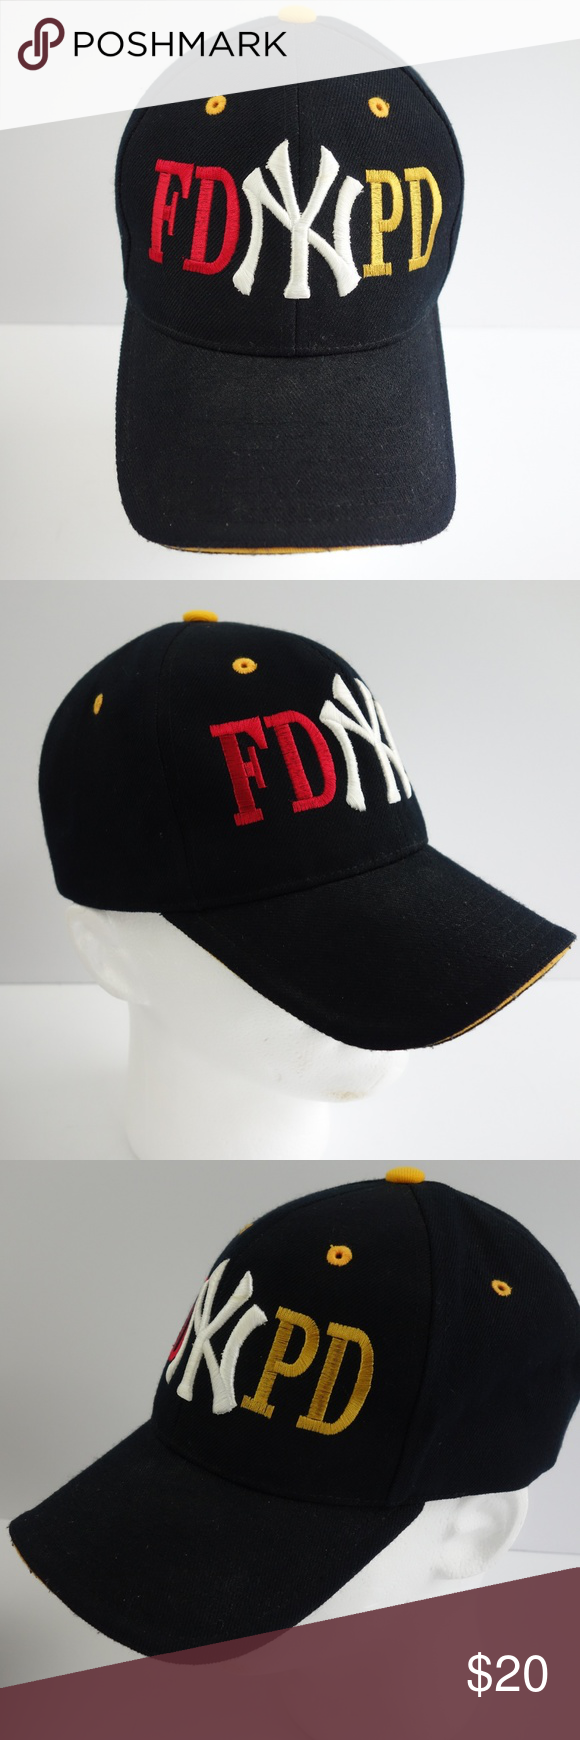 750f43759a62d New York FD and PD Embroidered Black Baseball Cap This is an embroidered  New York Fire Department (FD) and Police Department (PD) black adjustable  baseball ...